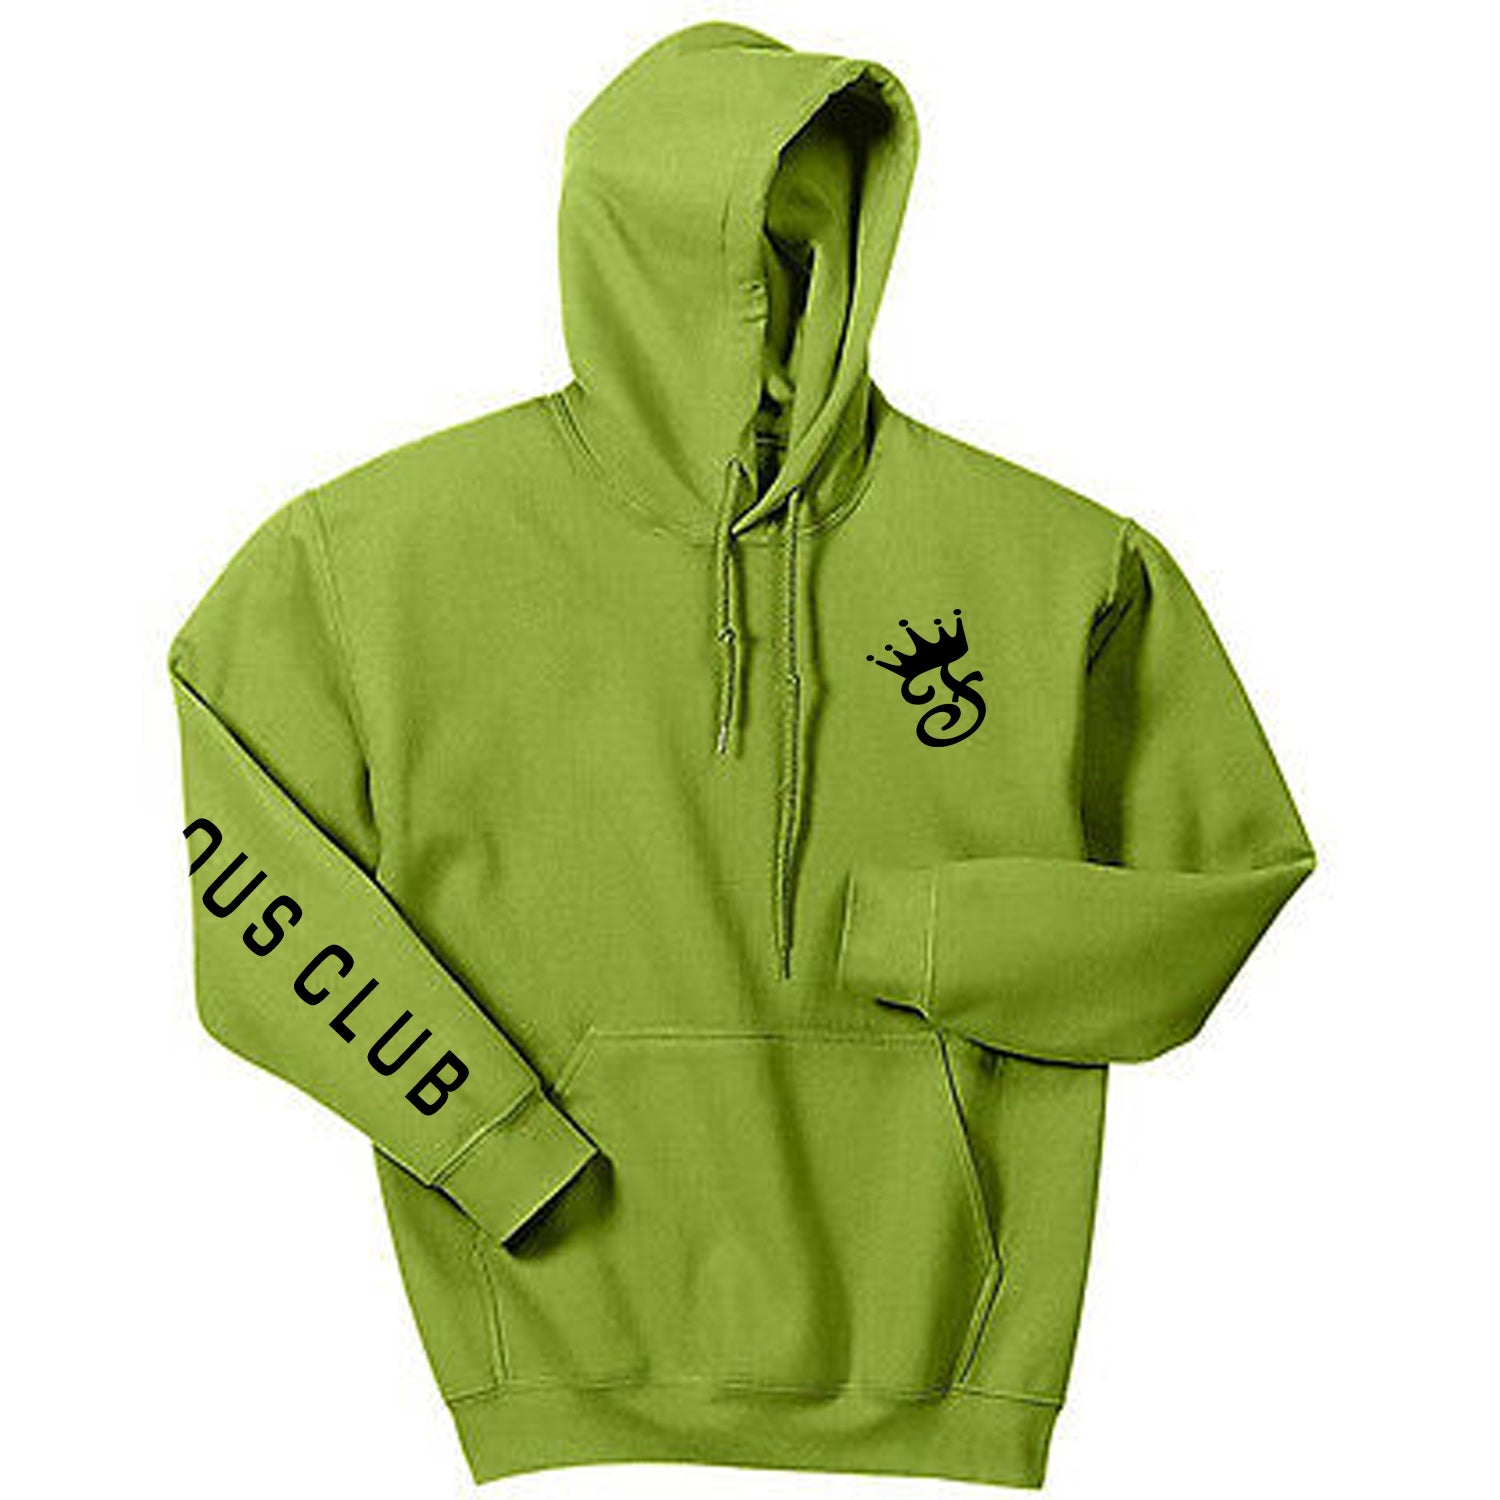 Olive Fame Hoodie - Famous Club Clothing